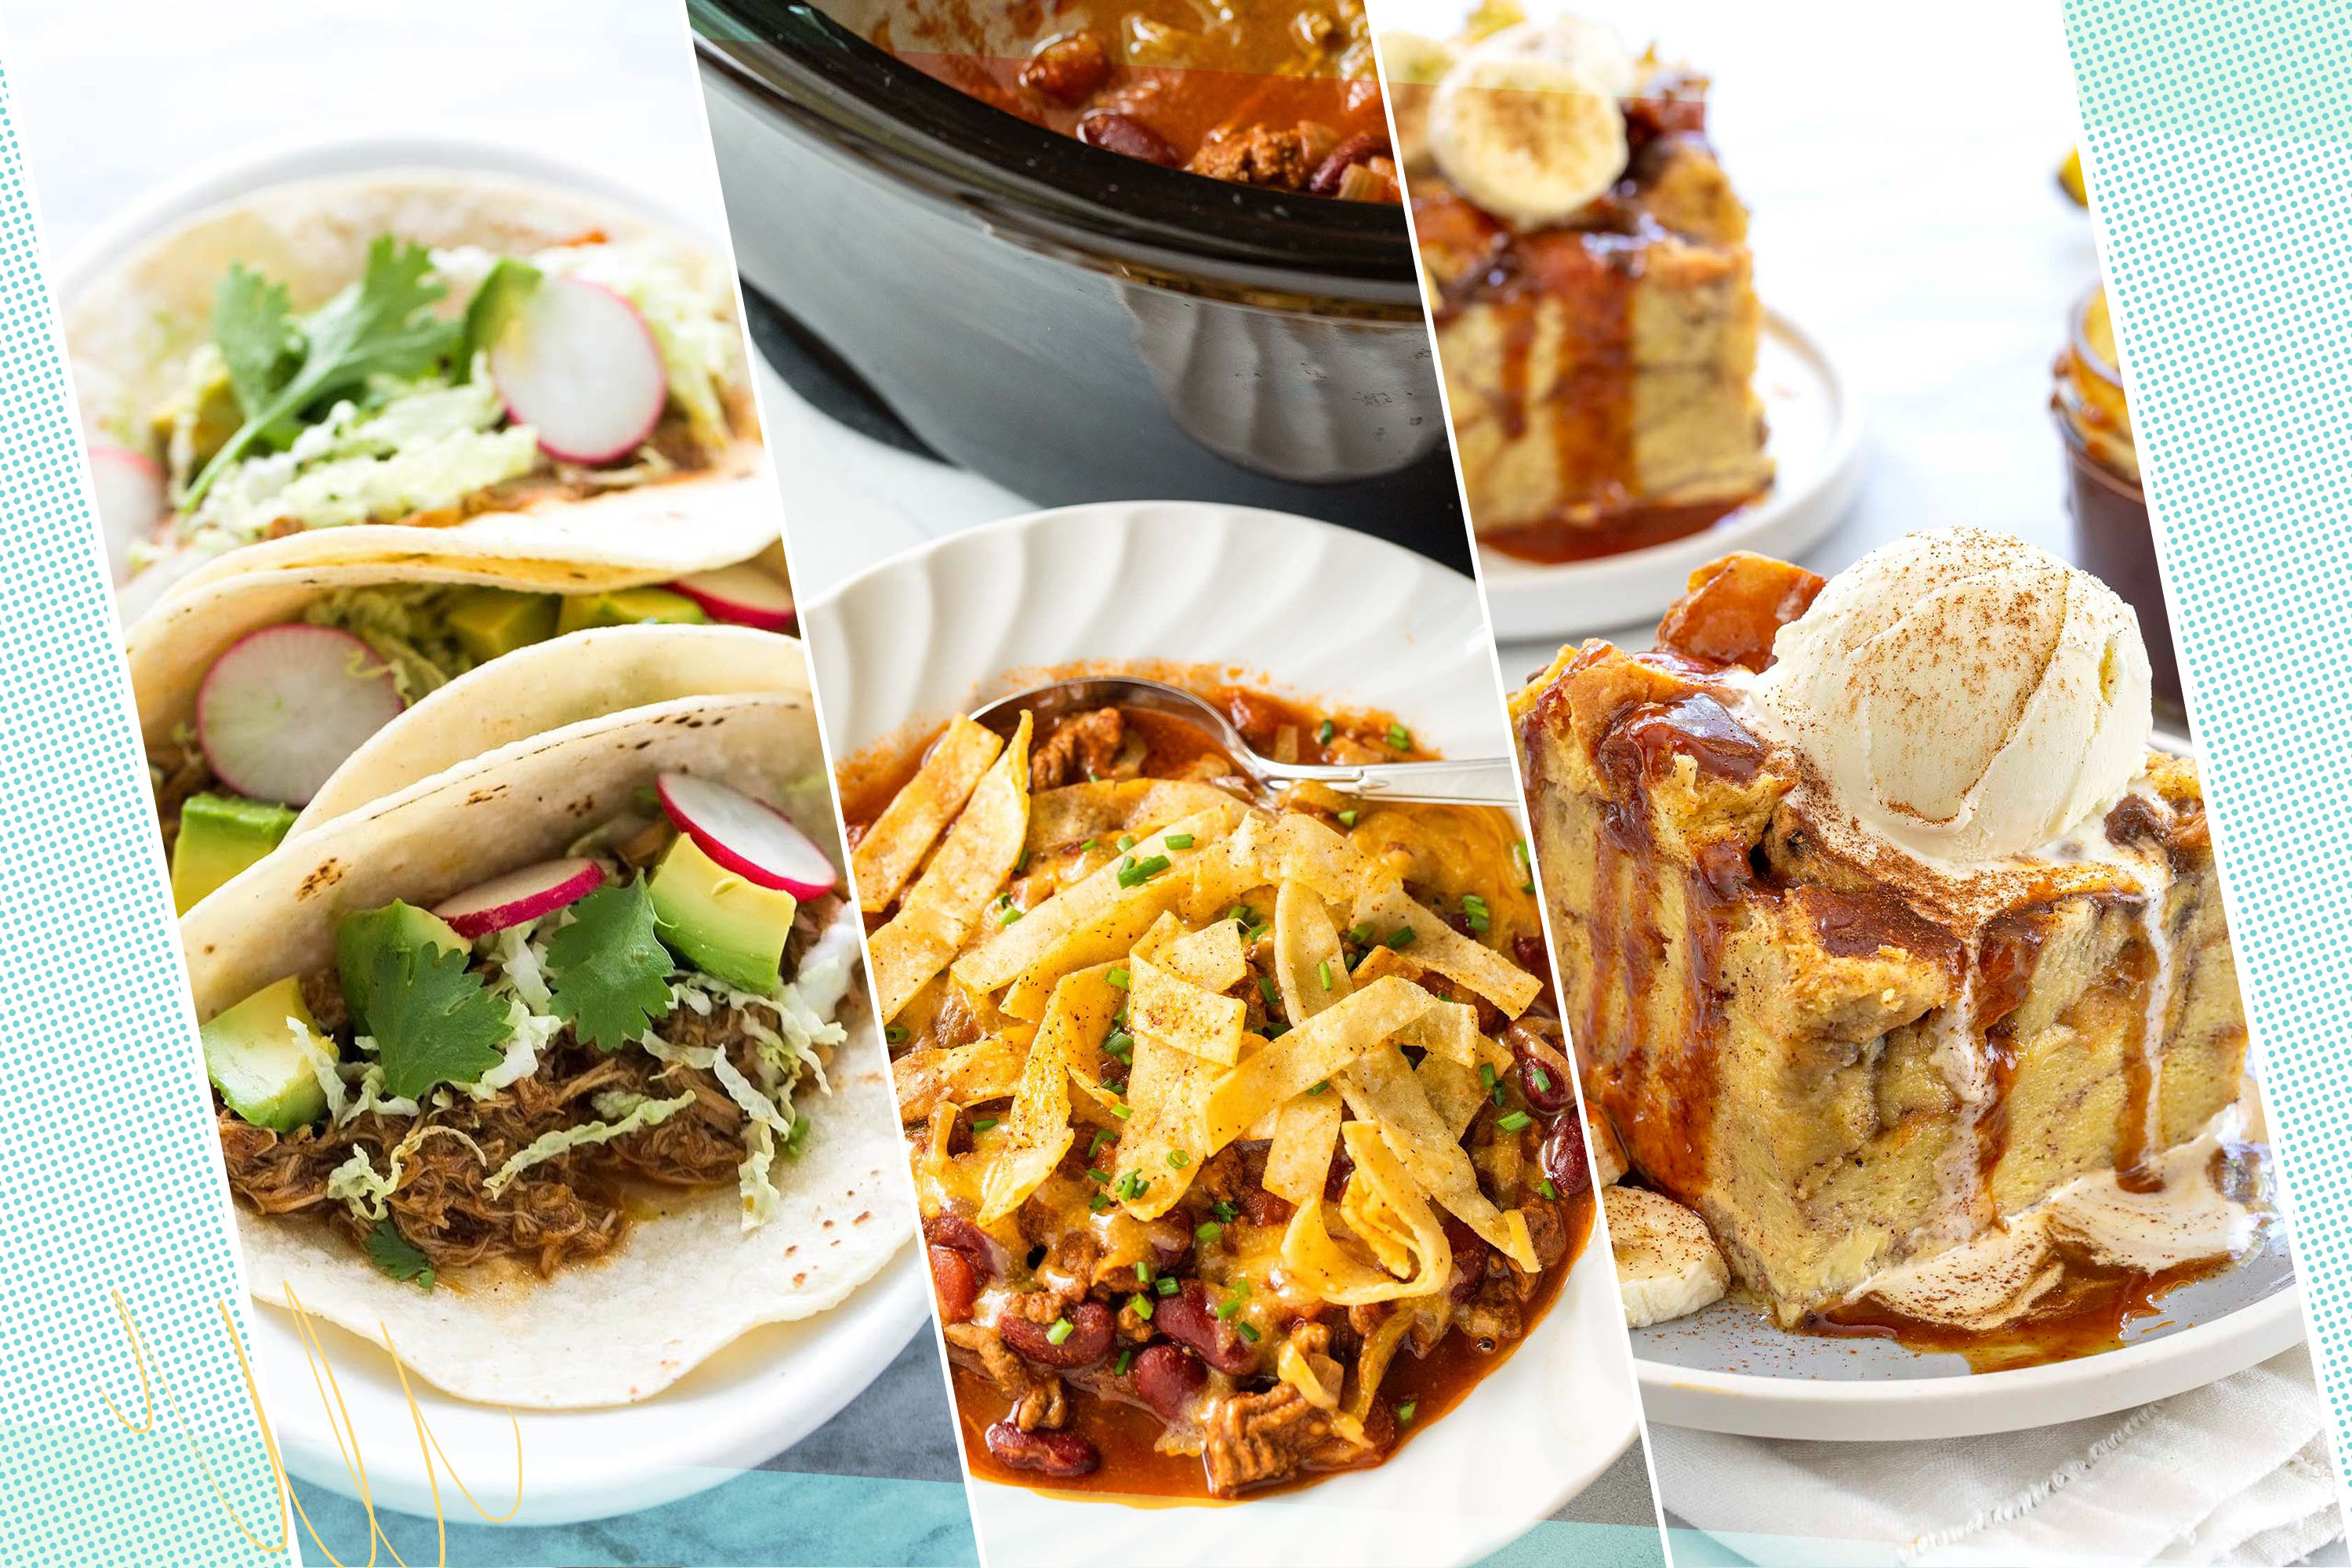 Showstopper Slow Cooker Recipes to Bring to Your Next Potluck